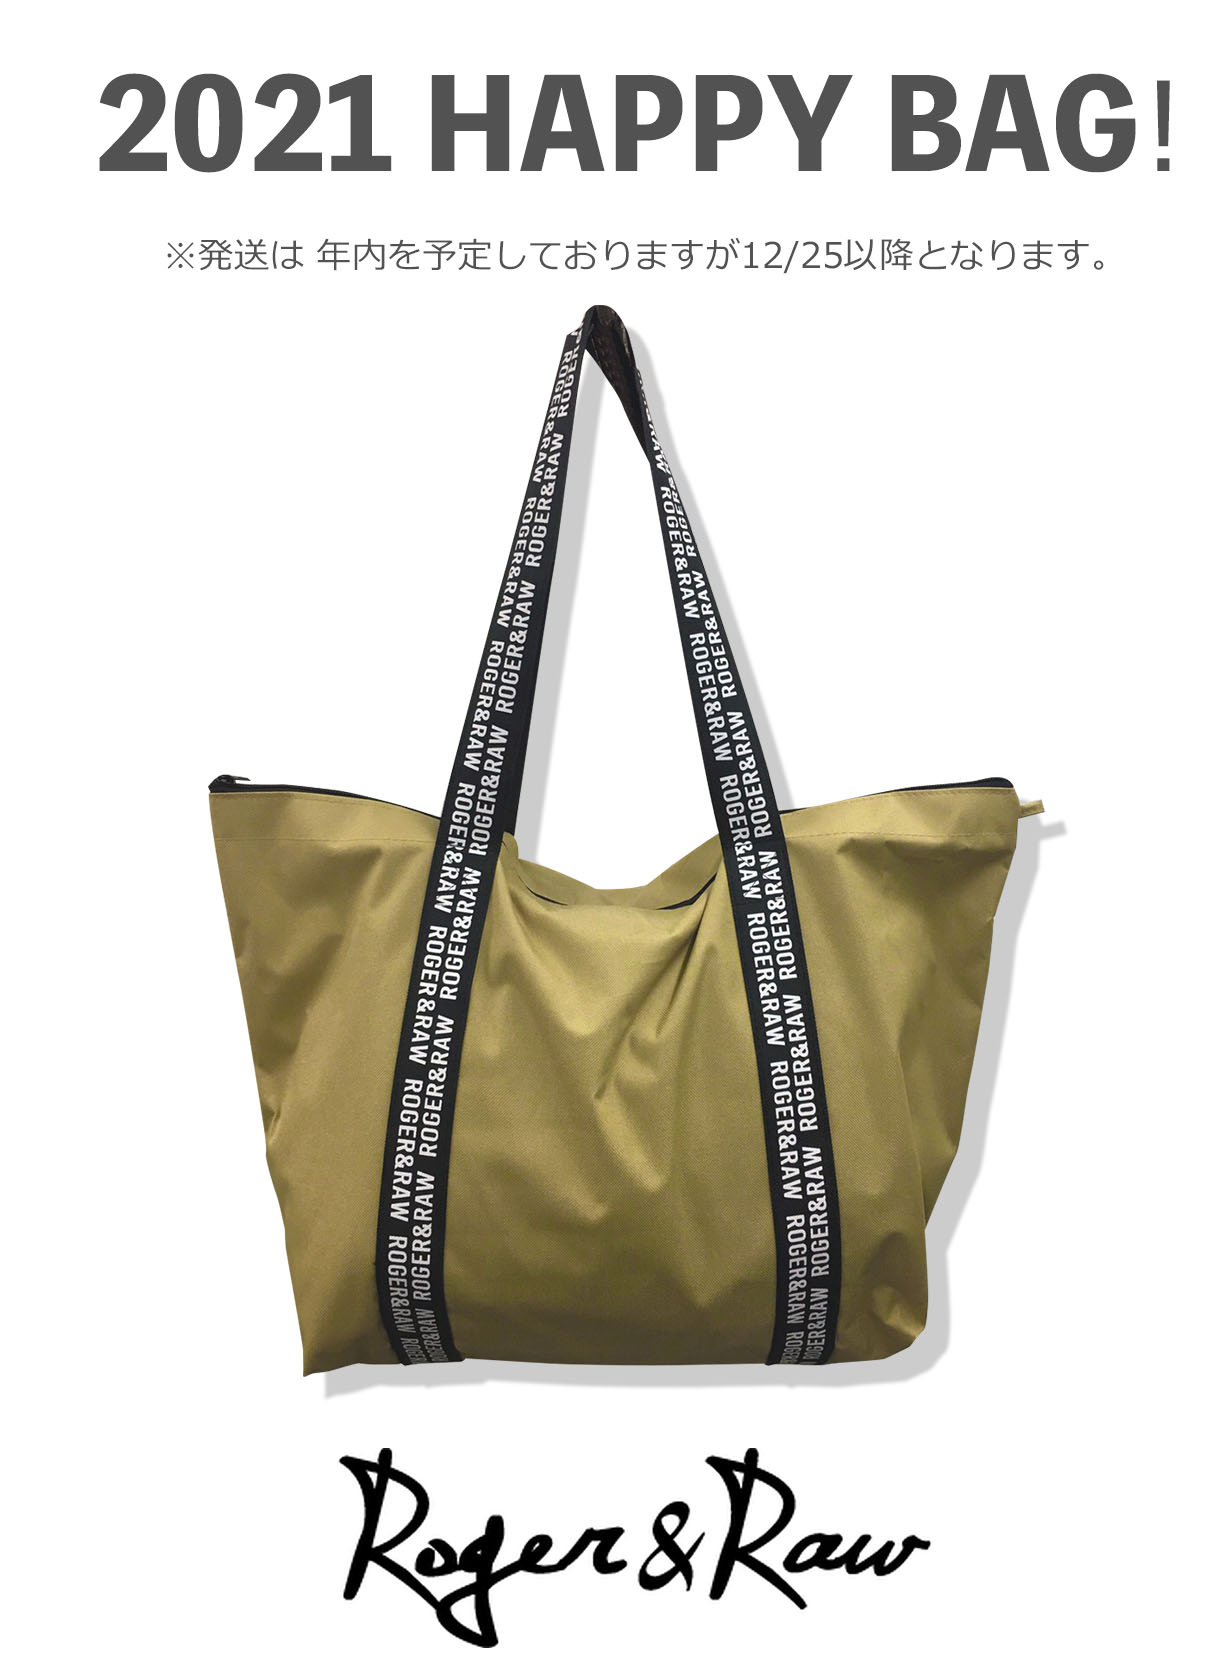 Roger&Raw 2021 HAPPY BAG